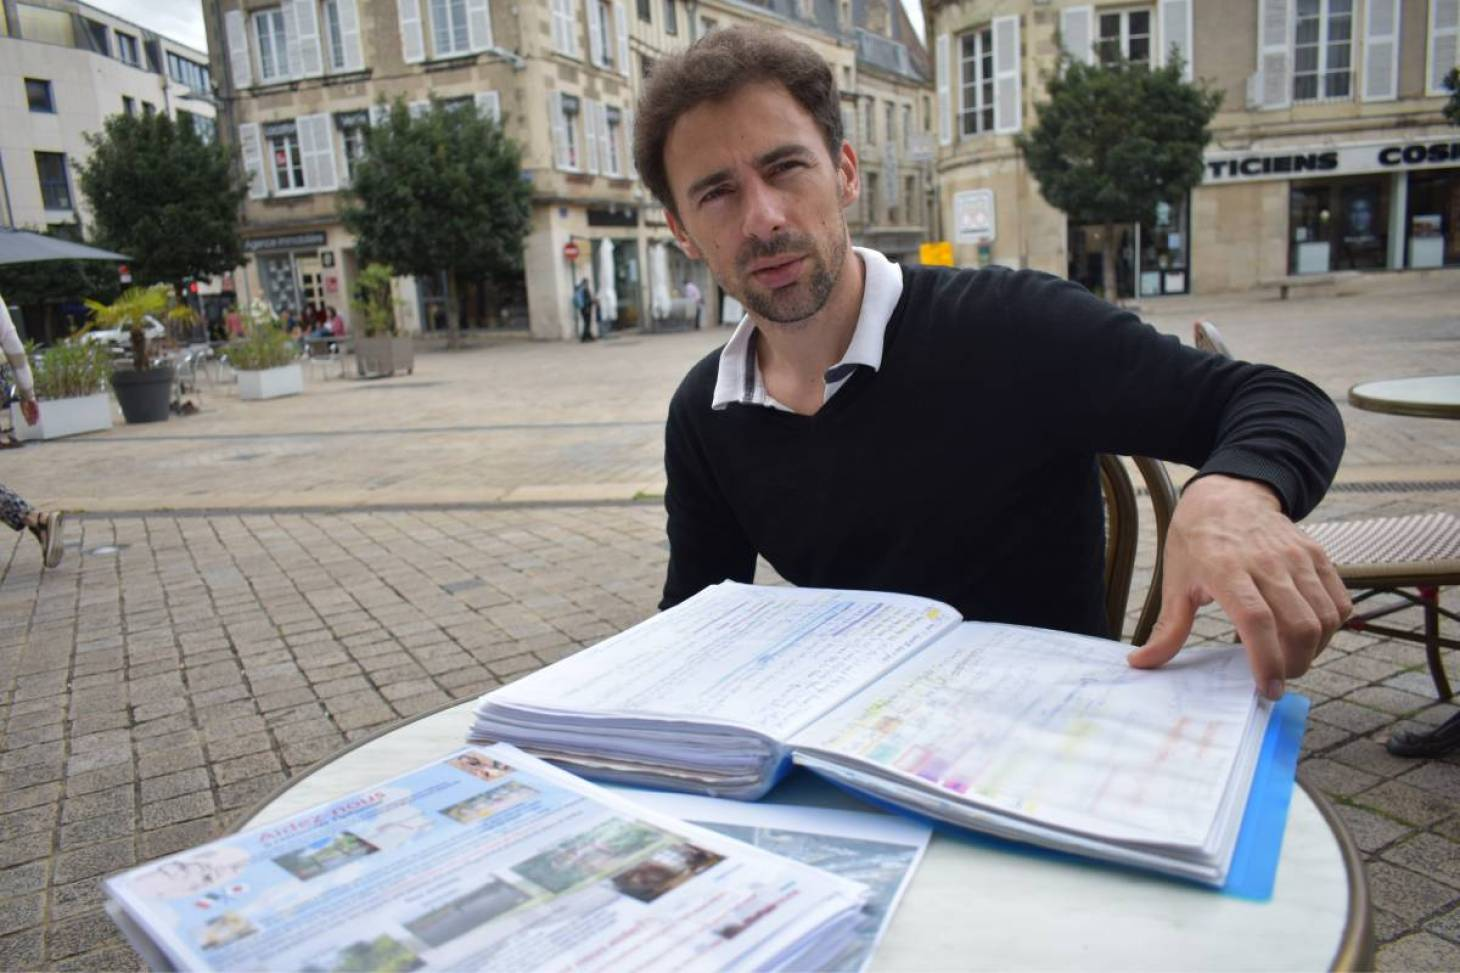 Disparition de Tiphaine : trop de questions en suspens